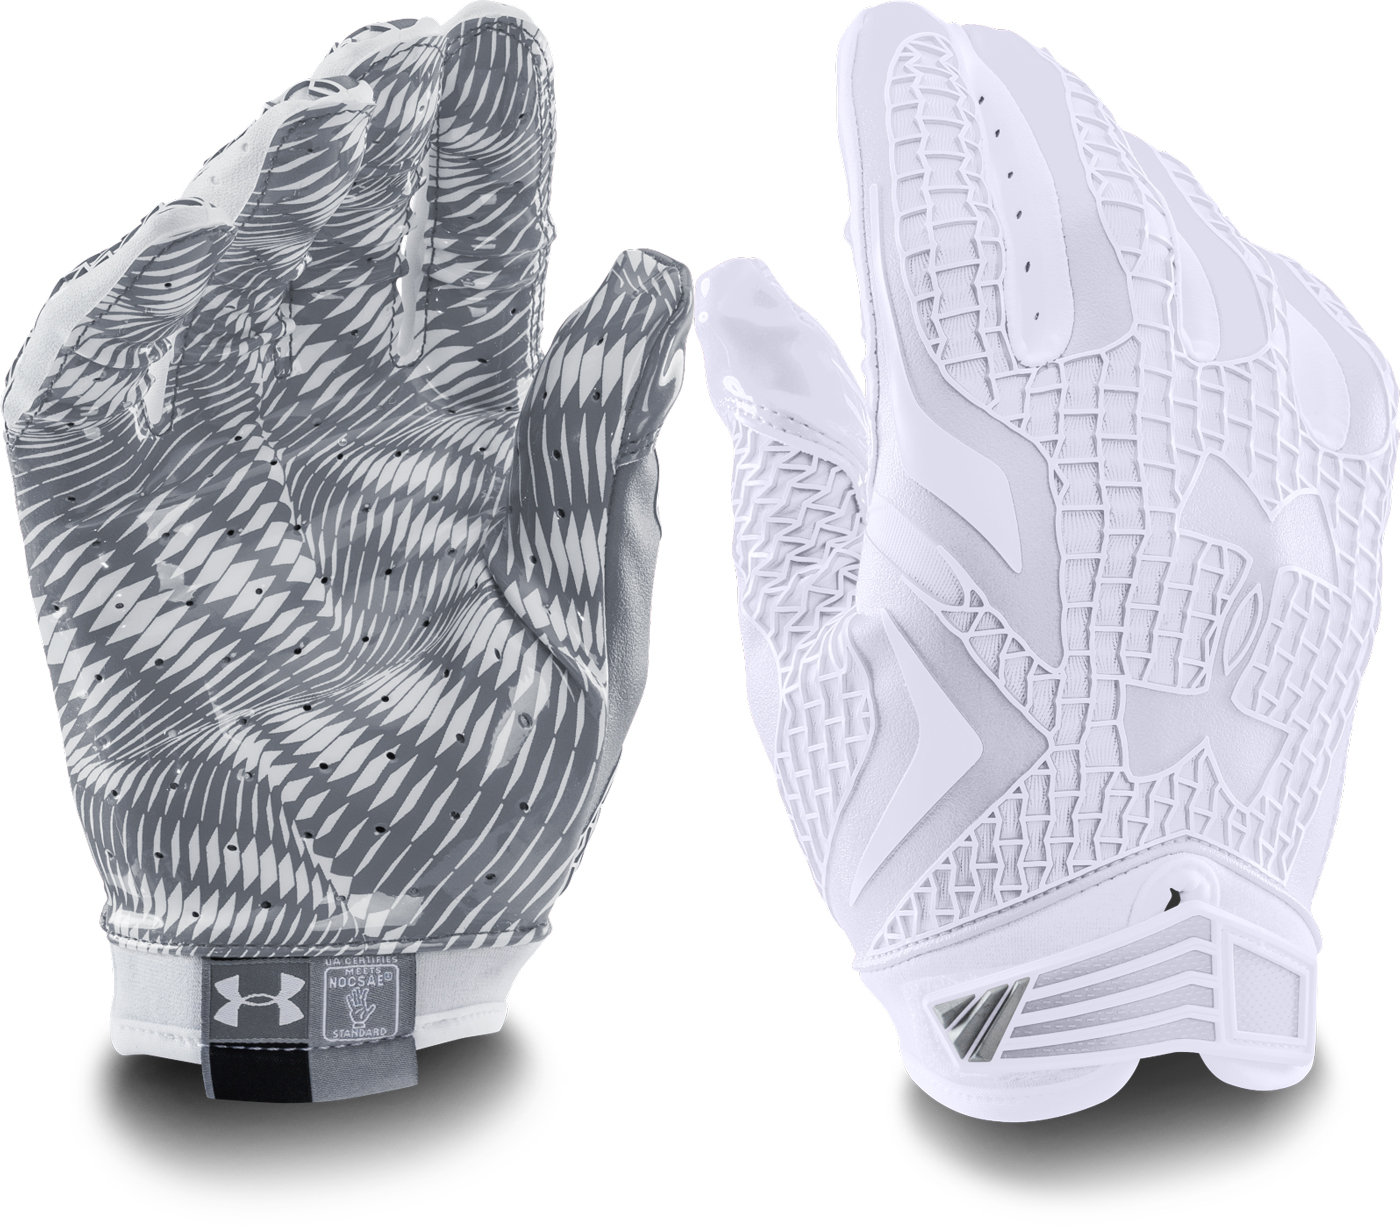 under armour swarm football gloves